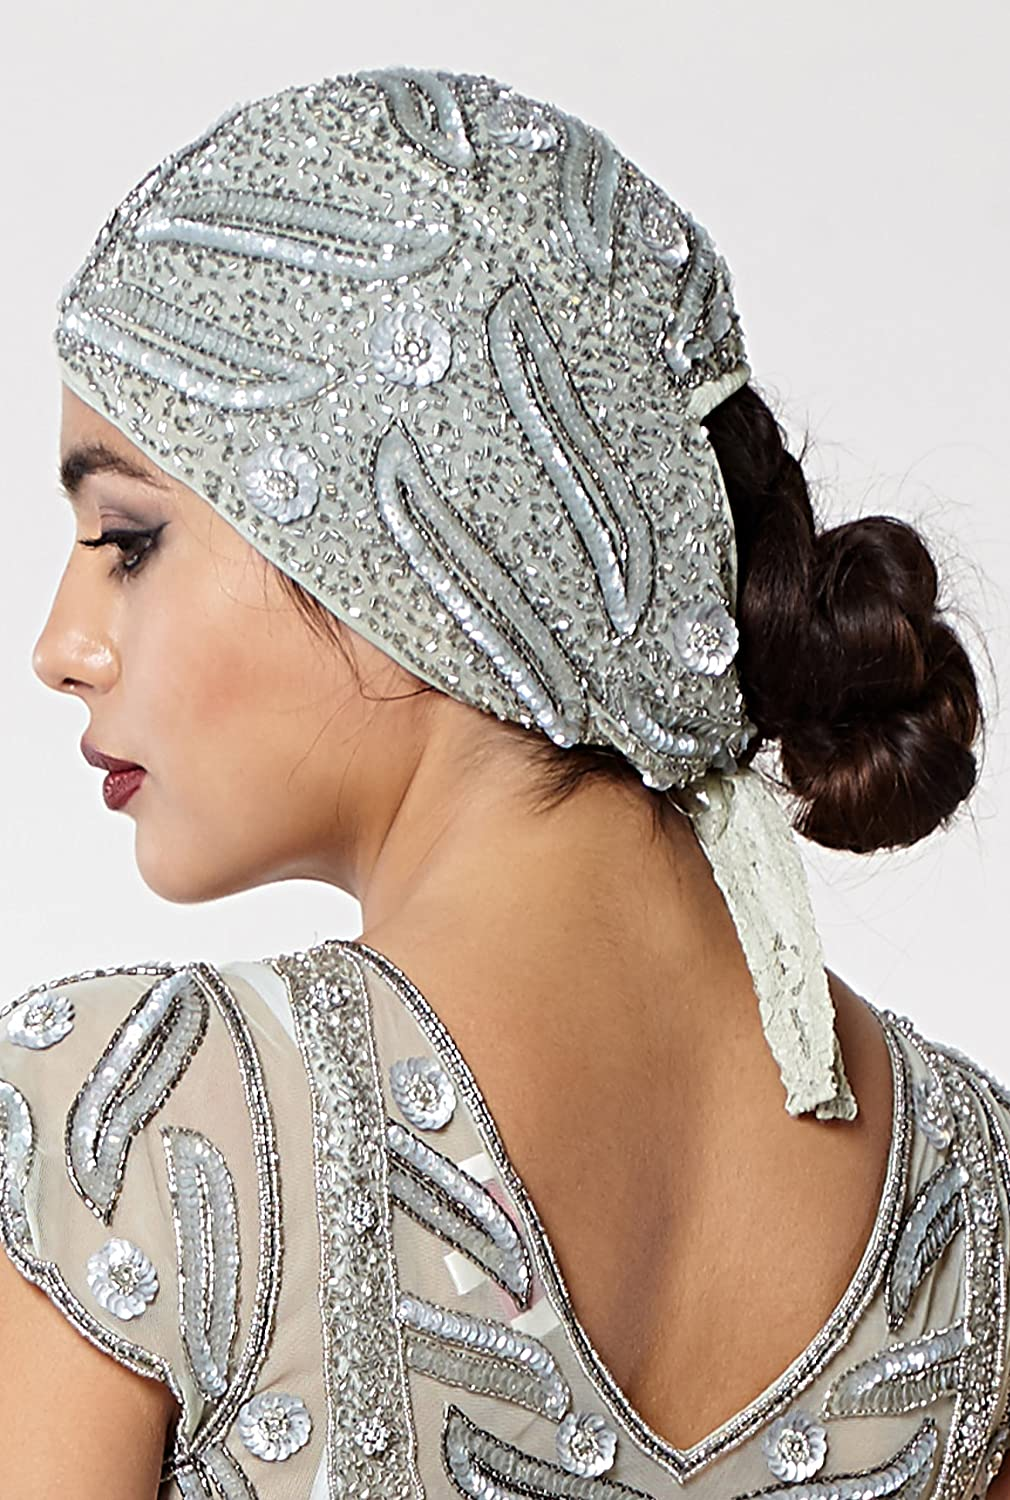 Downton Abbey Costumes Ideas gatsbylady london Juliet Vintage Inspired Flapper Cap in Grey Silver $35.07 AT vintagedancer.com